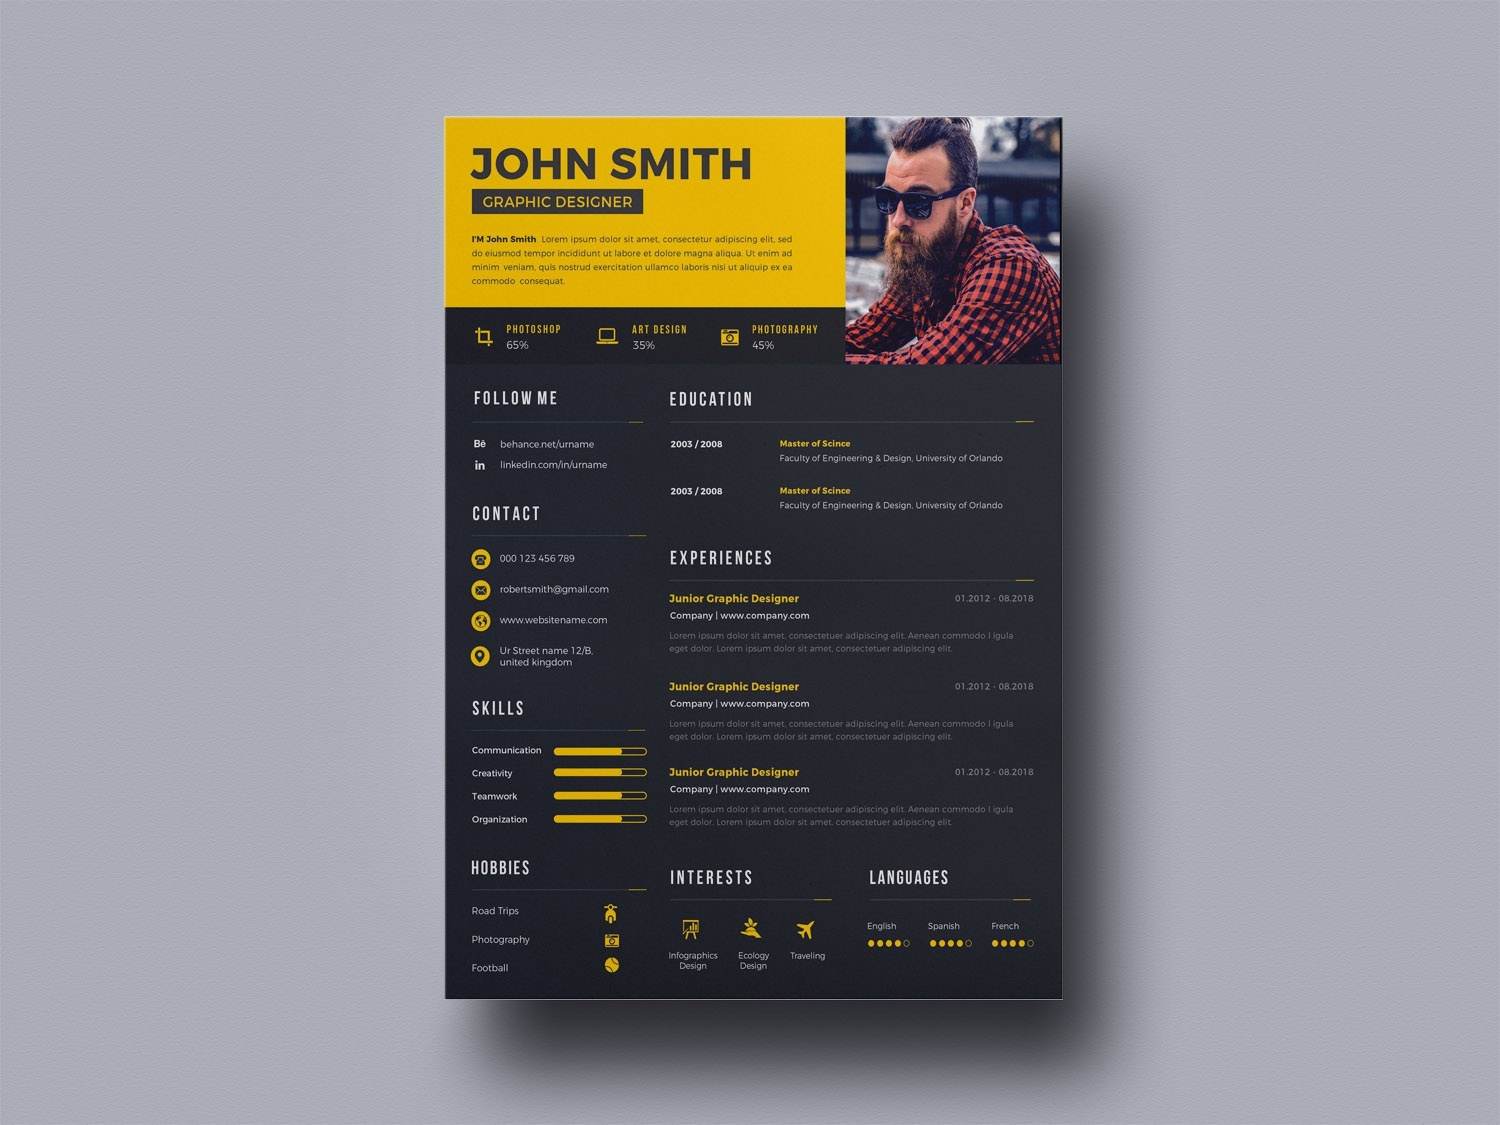 free creative designer resume template by andy khan on dribbble